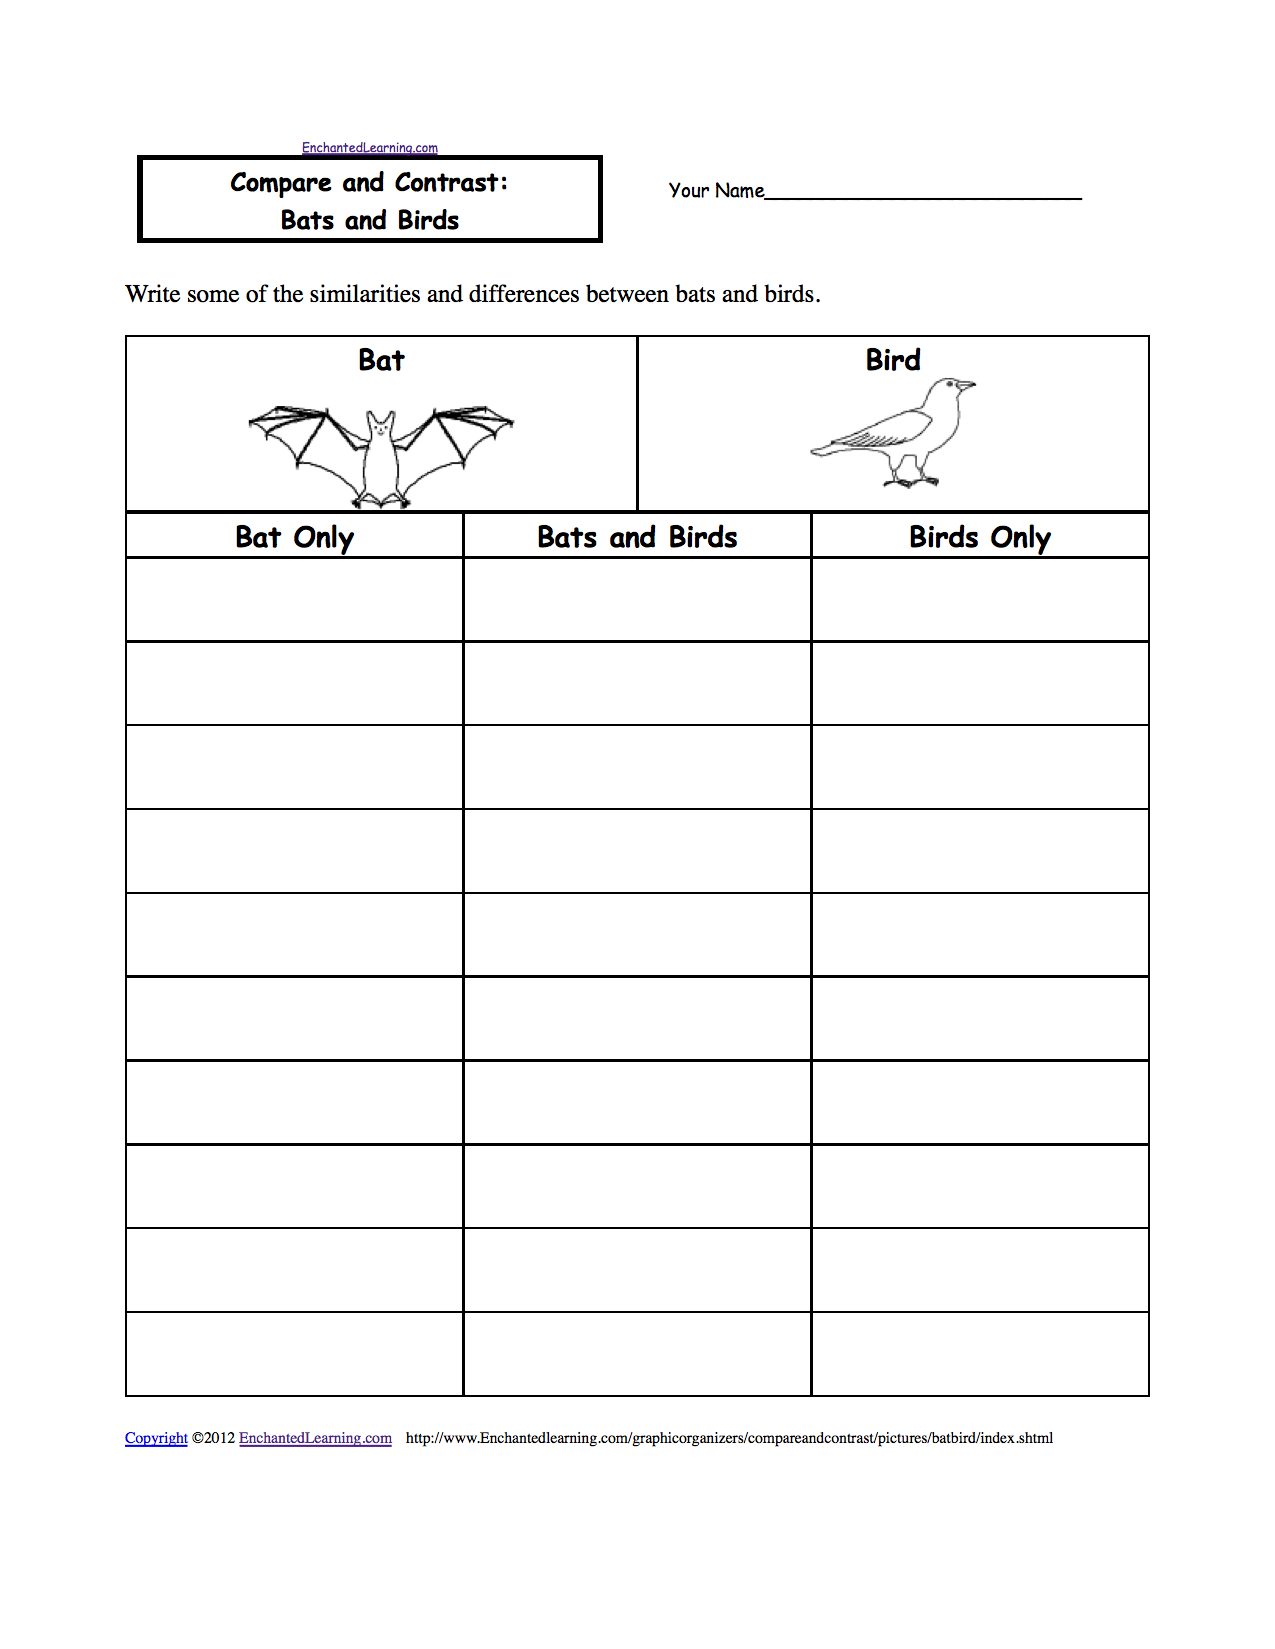 Compare and Contrast Worksheets to Print - EnchantedLearning.com